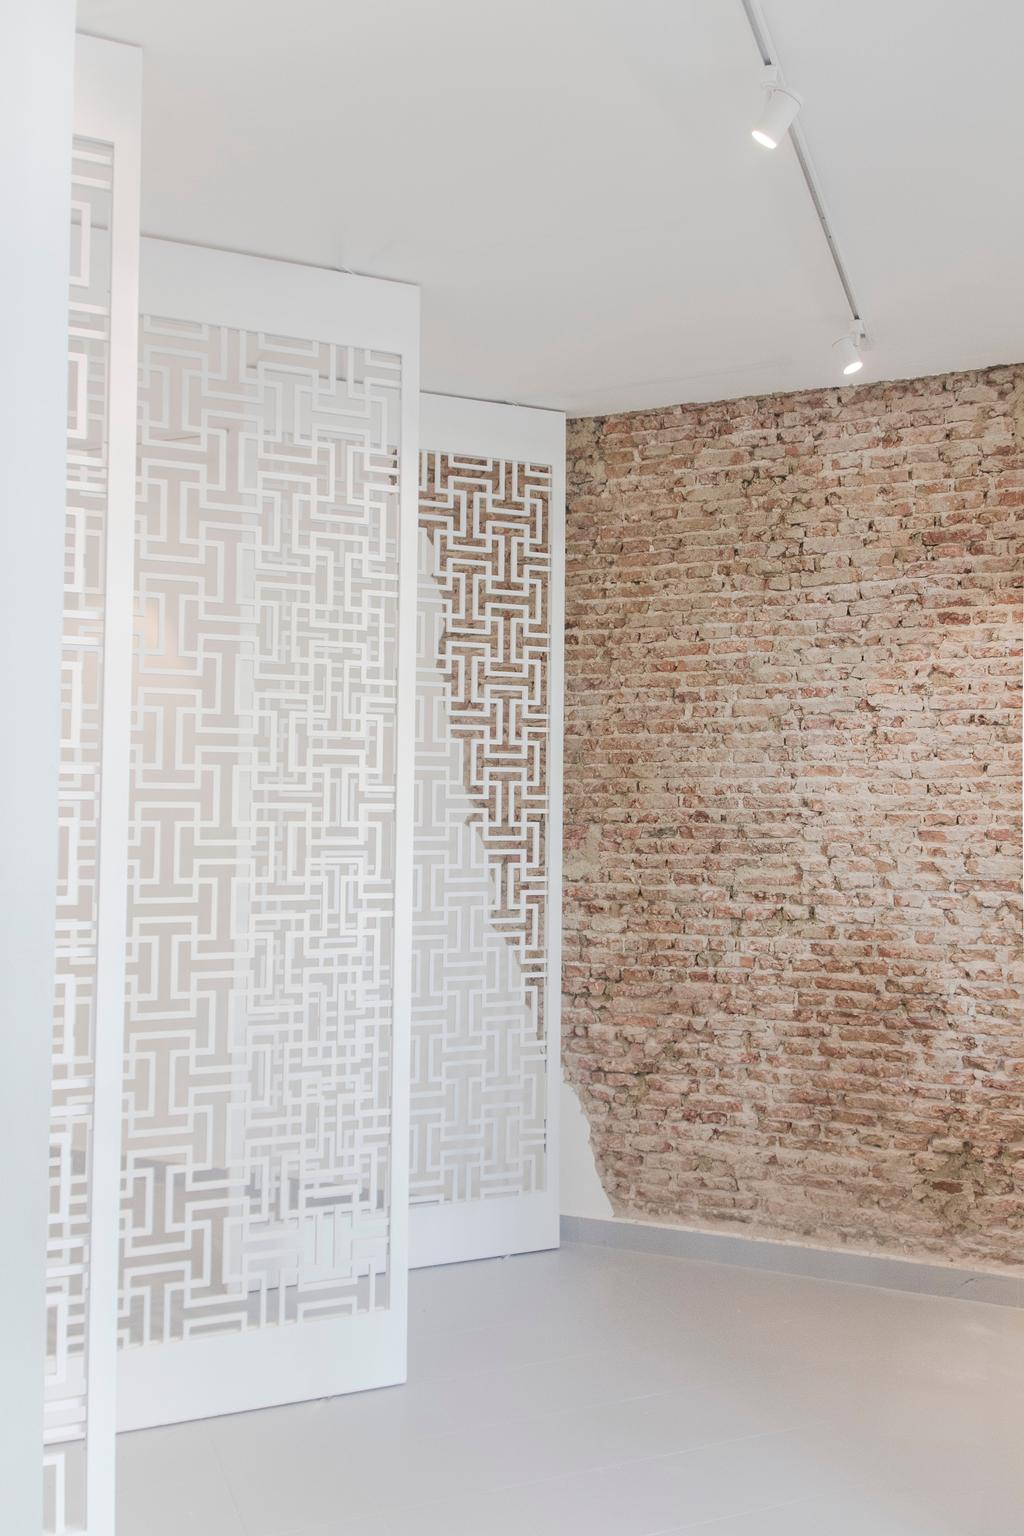 19 Cantonment, Commercial, Architect, PROVOLK ARCHITECTS, Modern, Patterned Partition, Partitions, Carpet, Home Decor